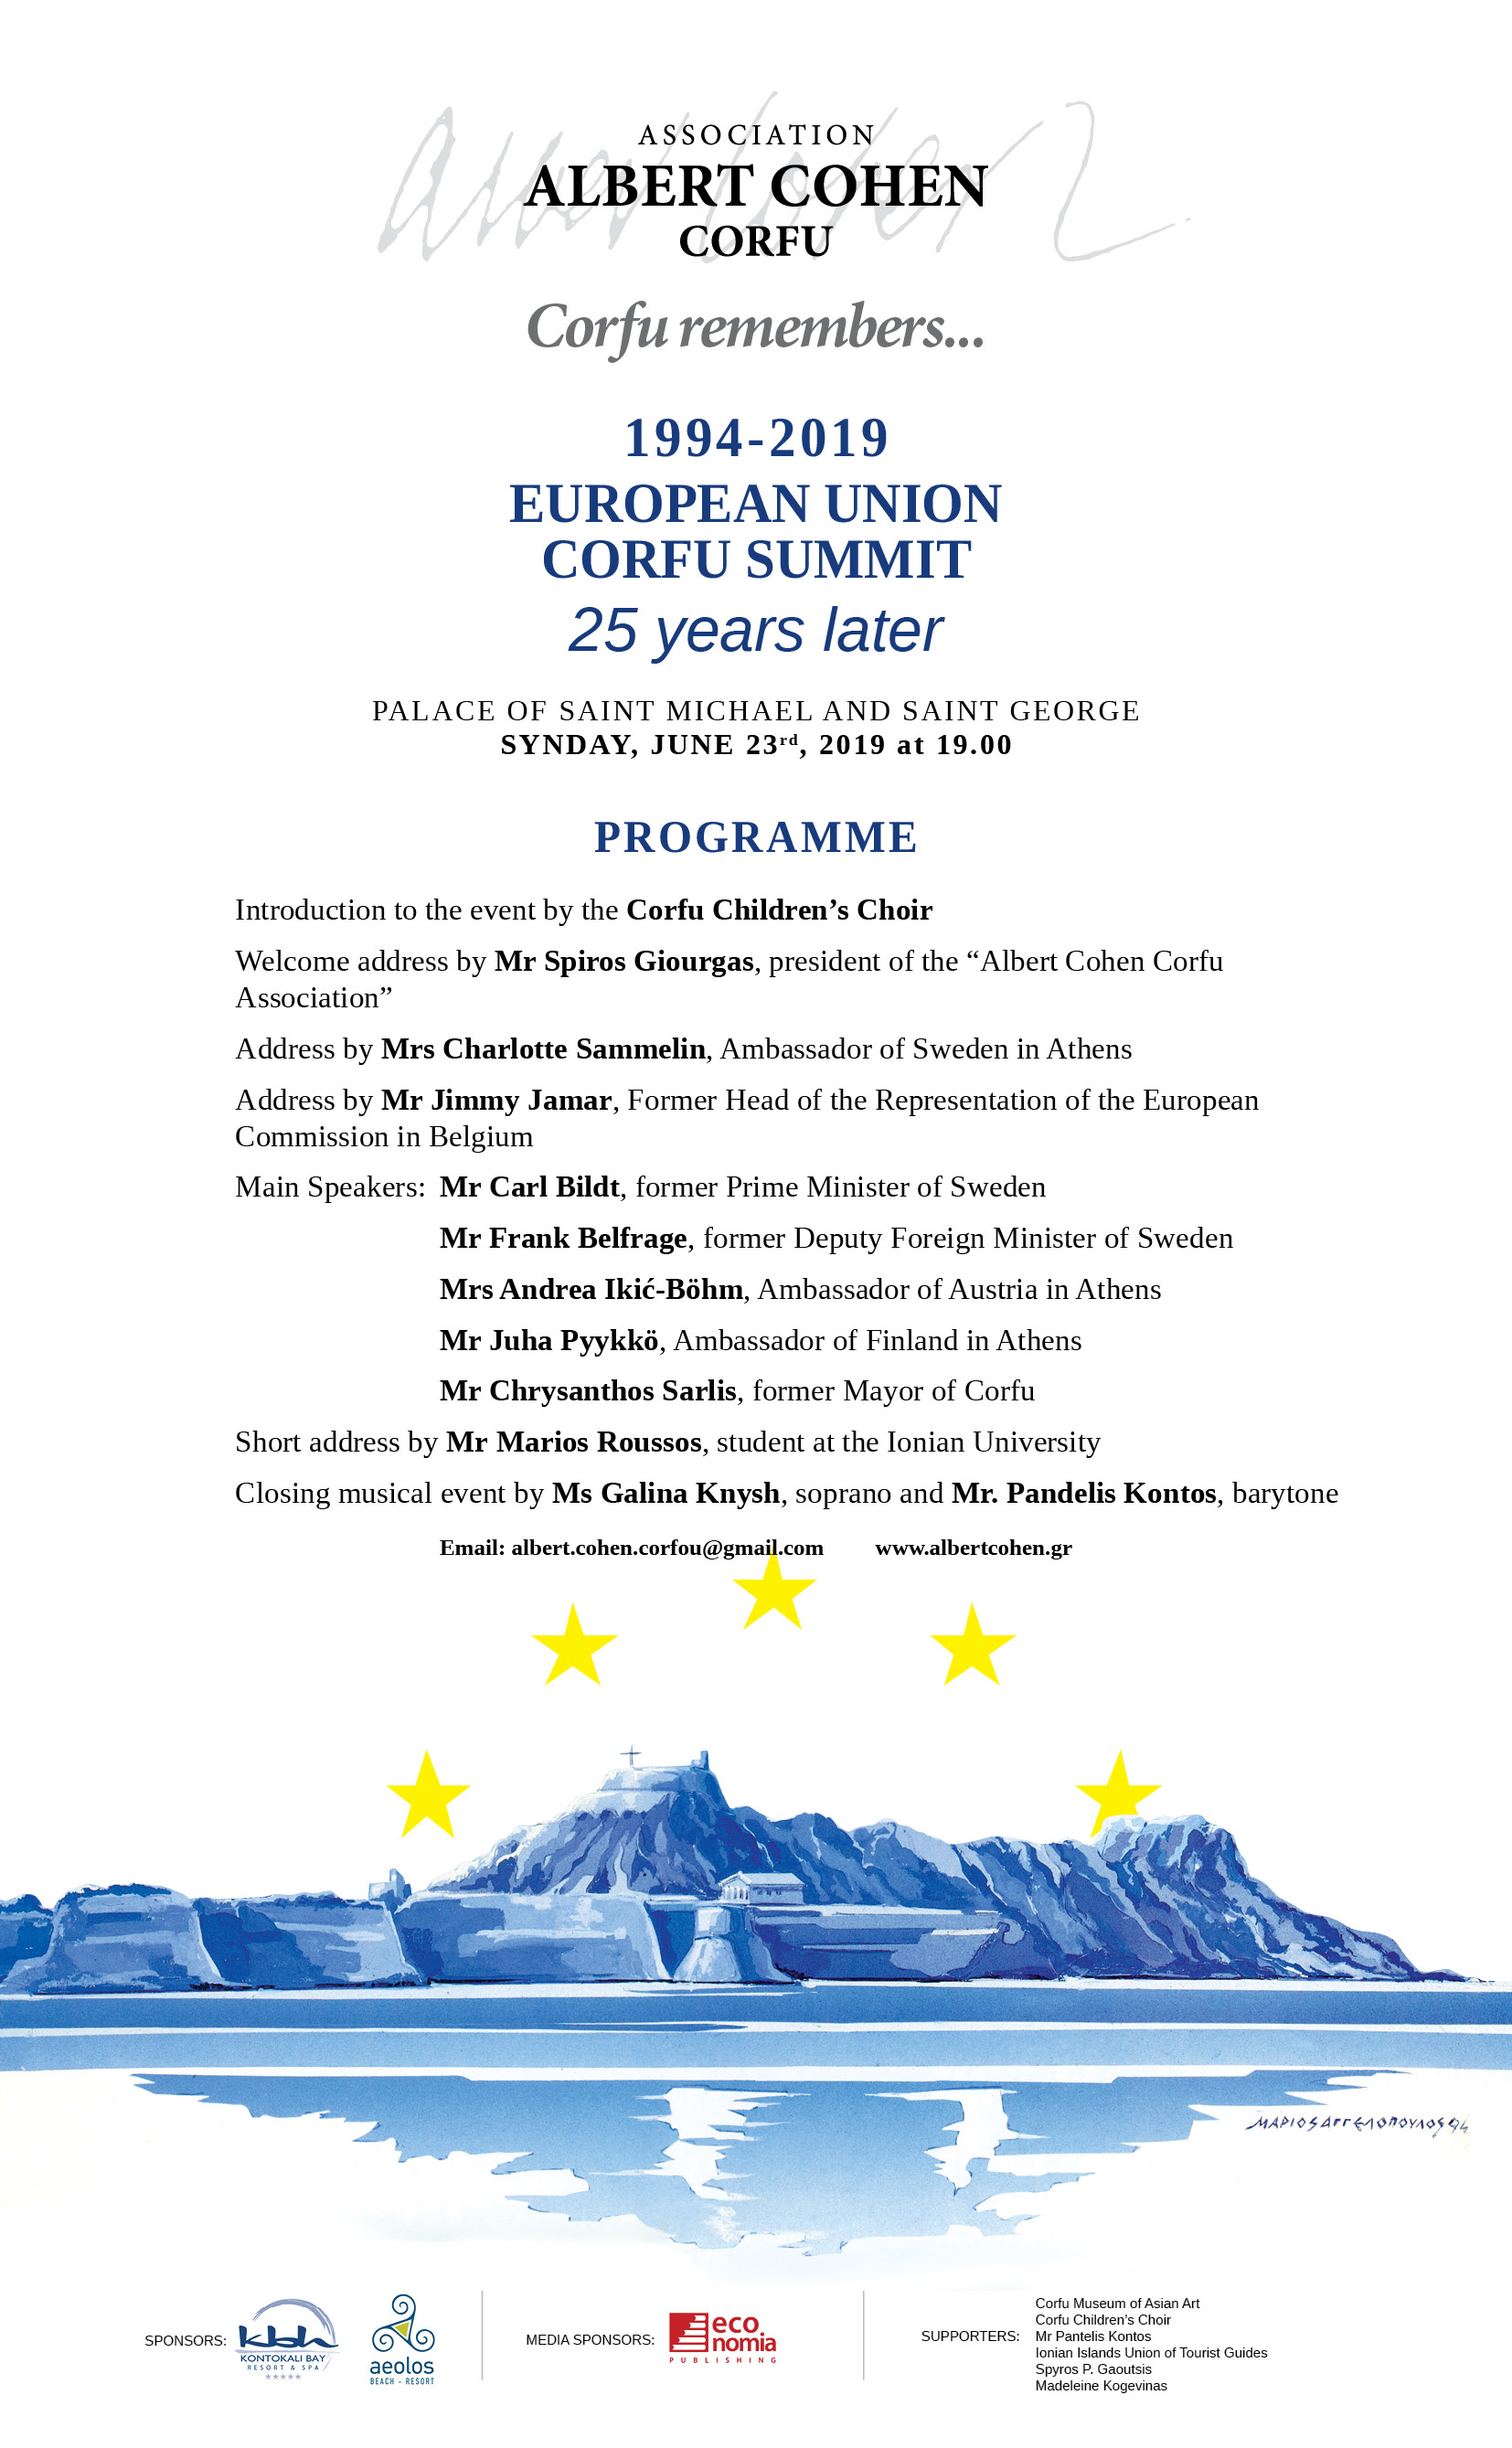 1994 - 2019 European Union Corfu Summit